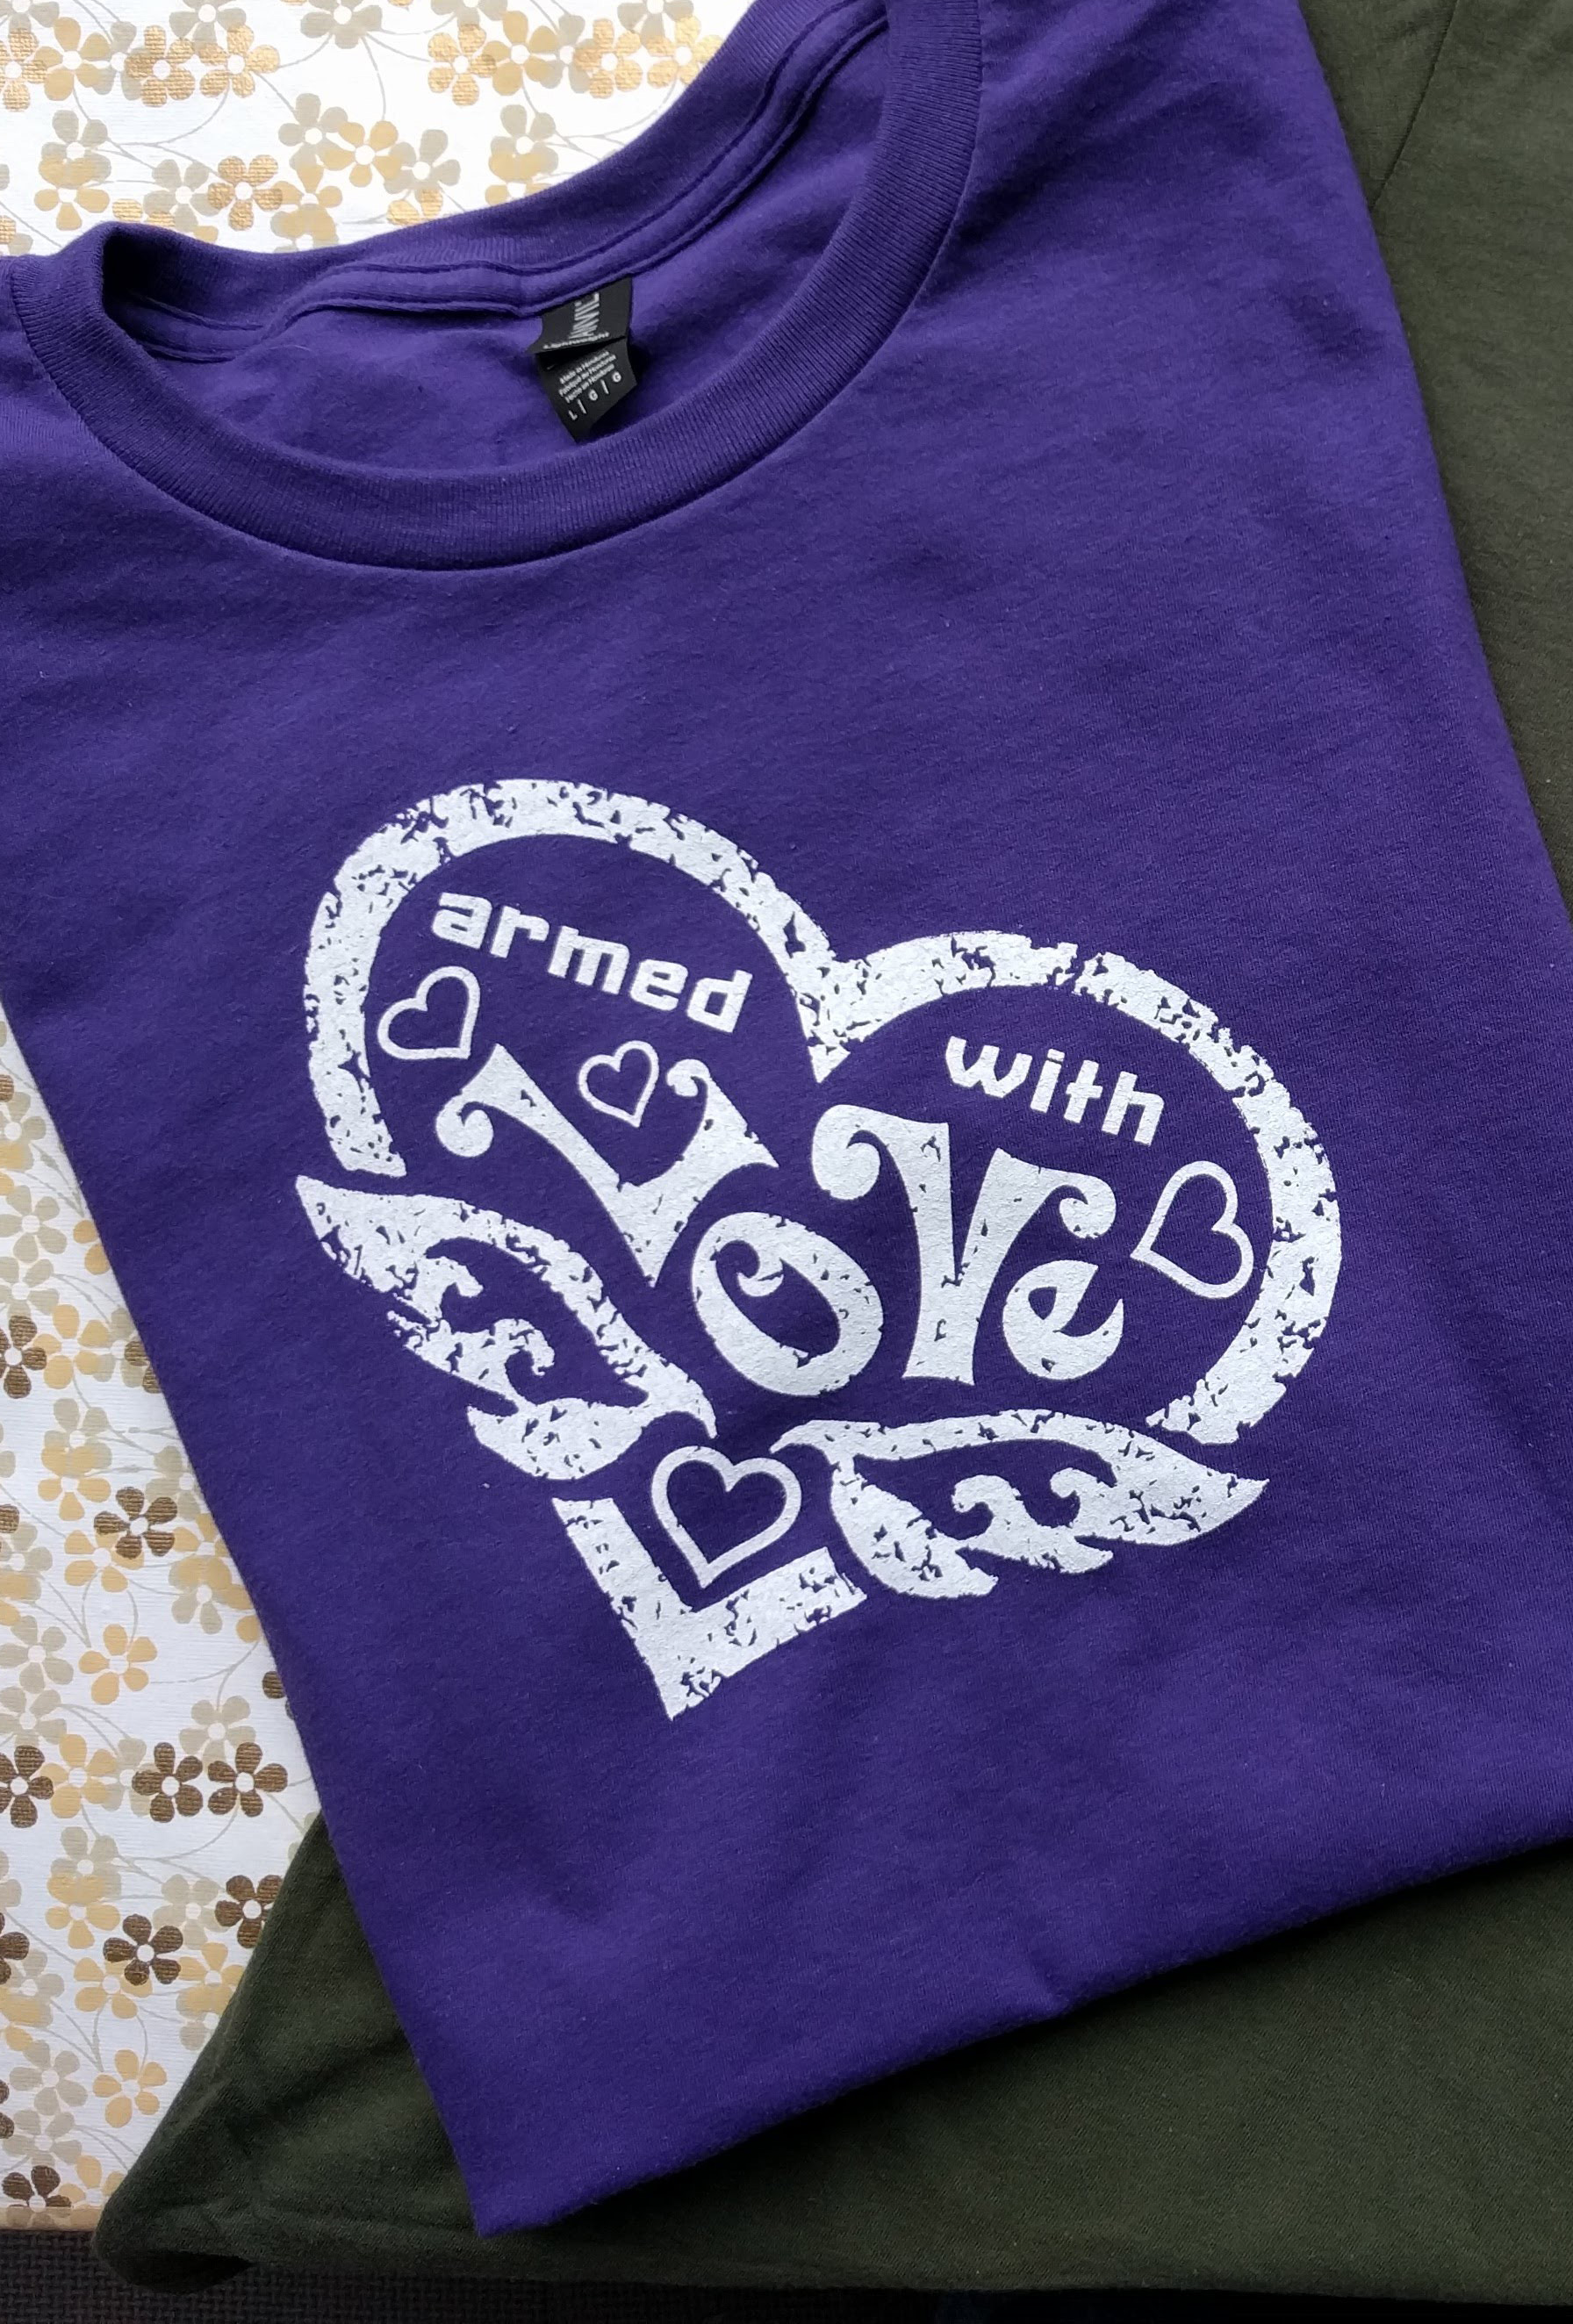 Armed With Love t-shirt